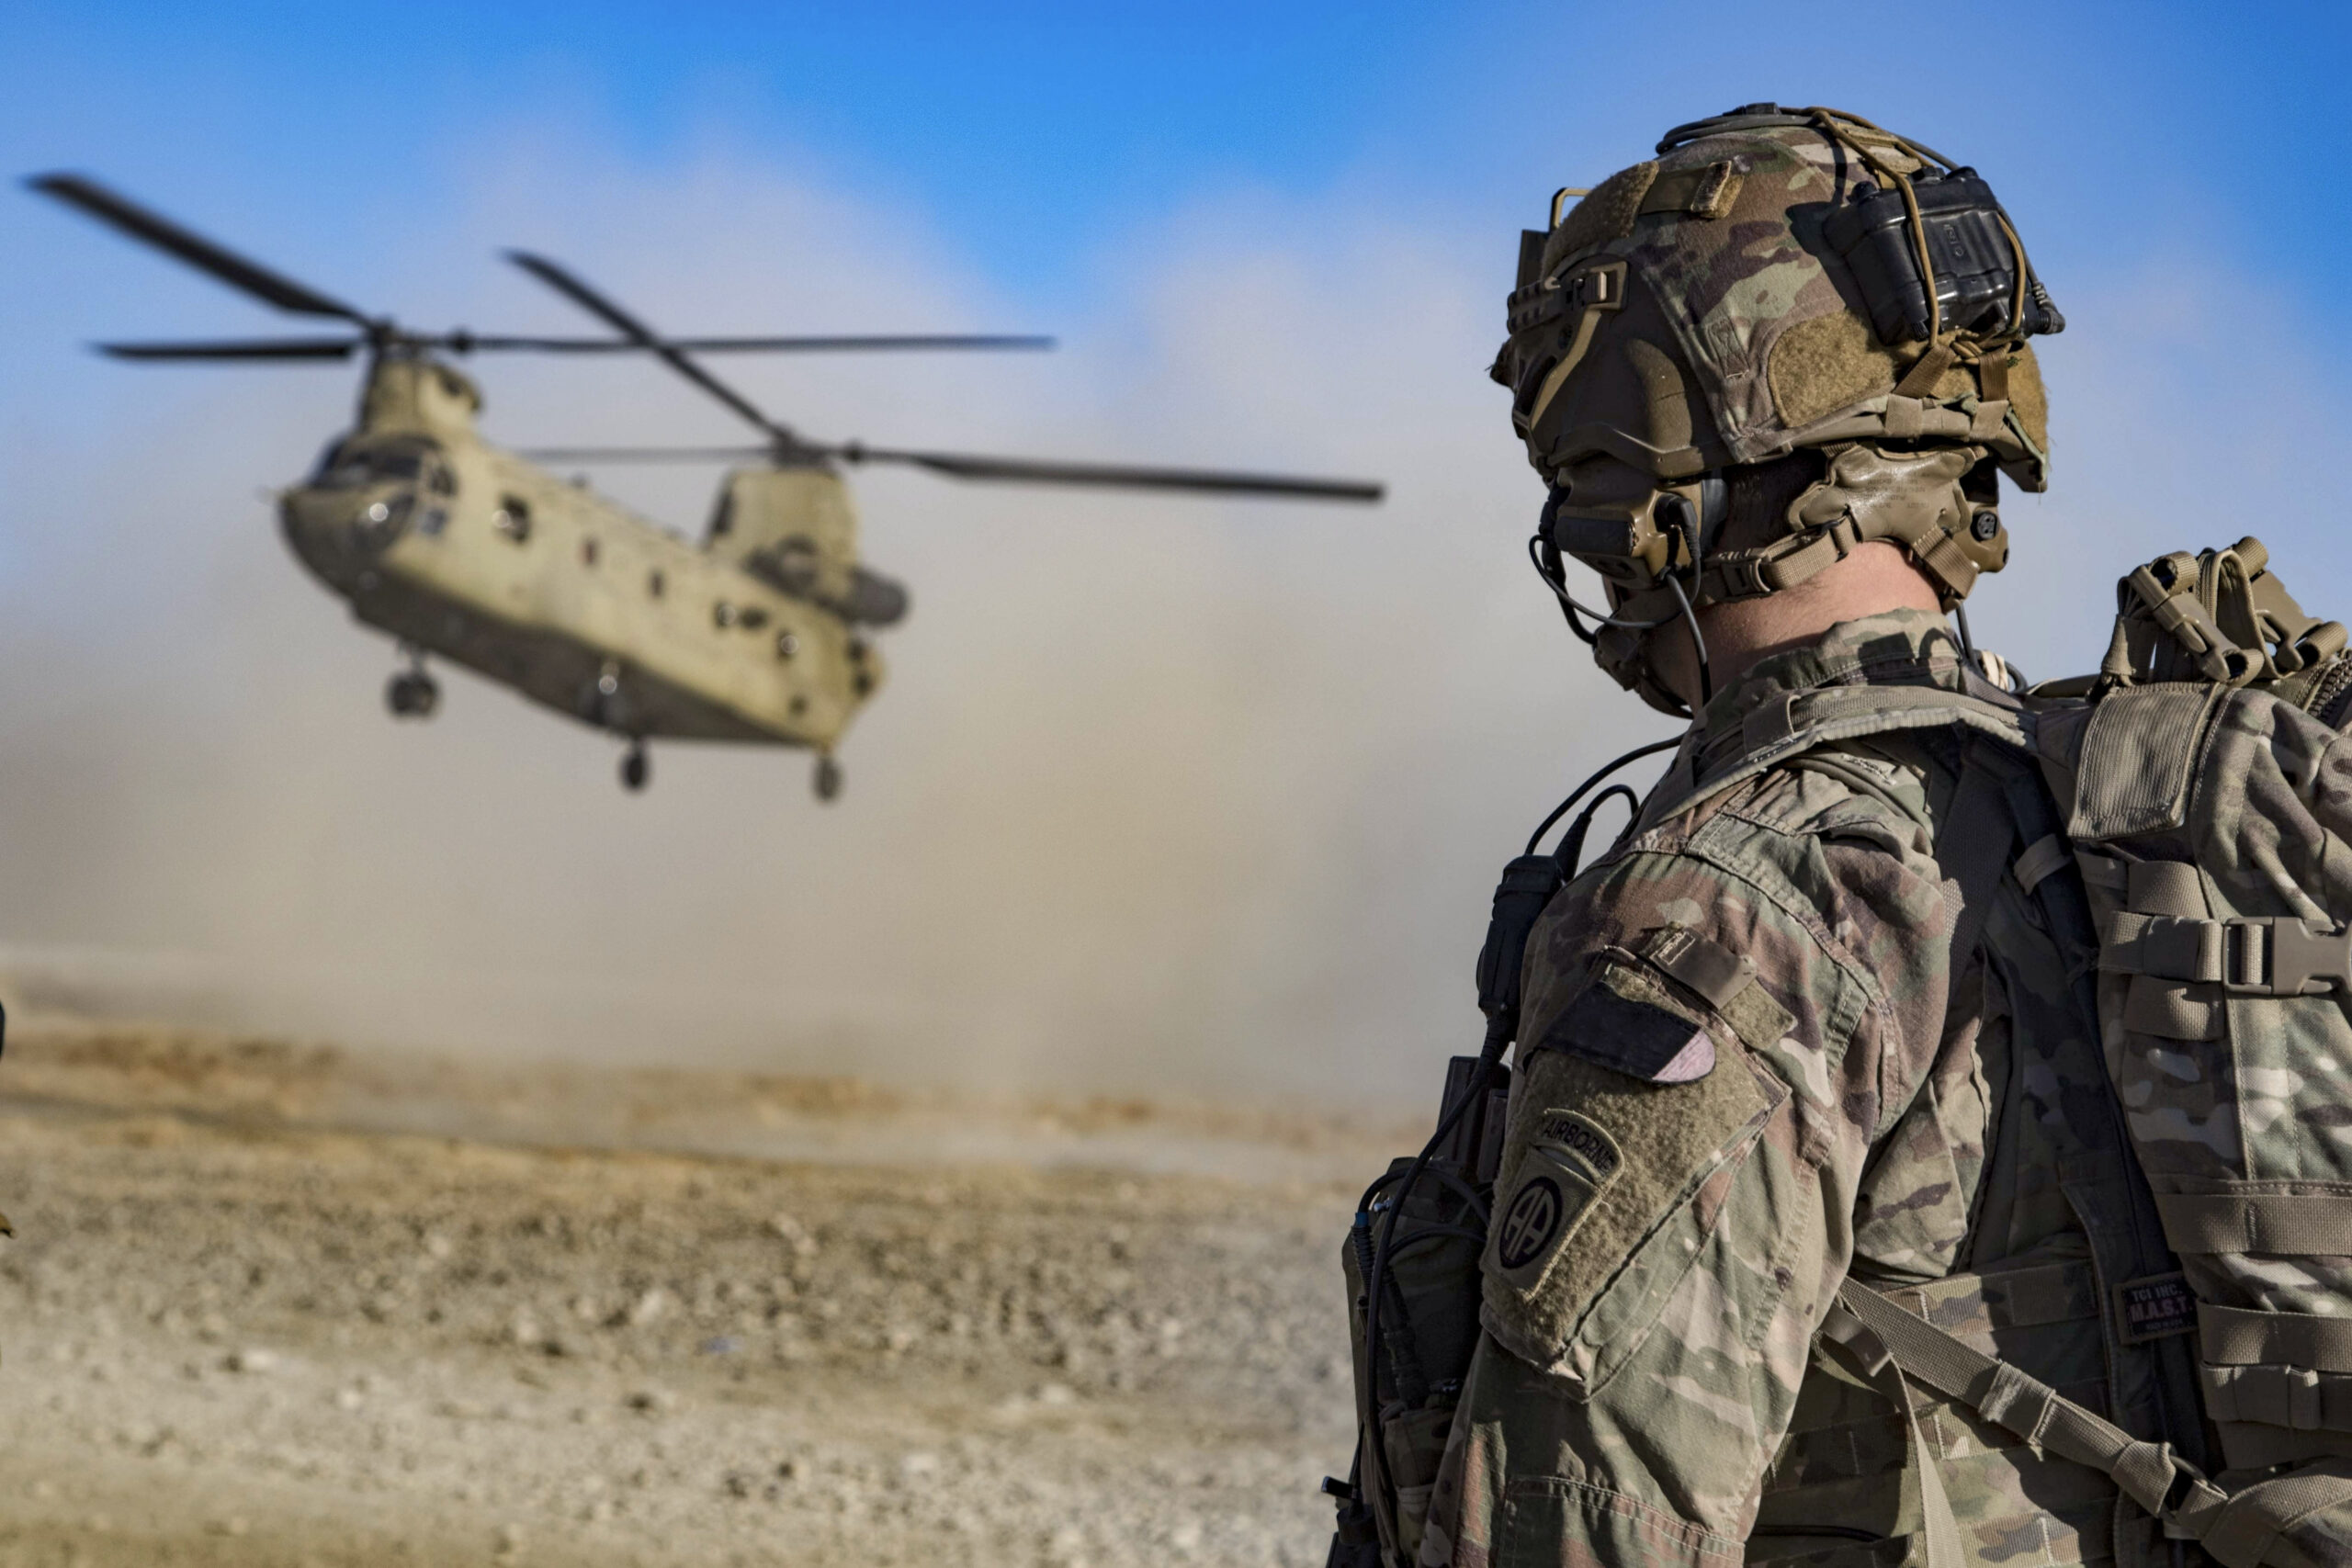 Army soldier watches helicopter land in Afganistan